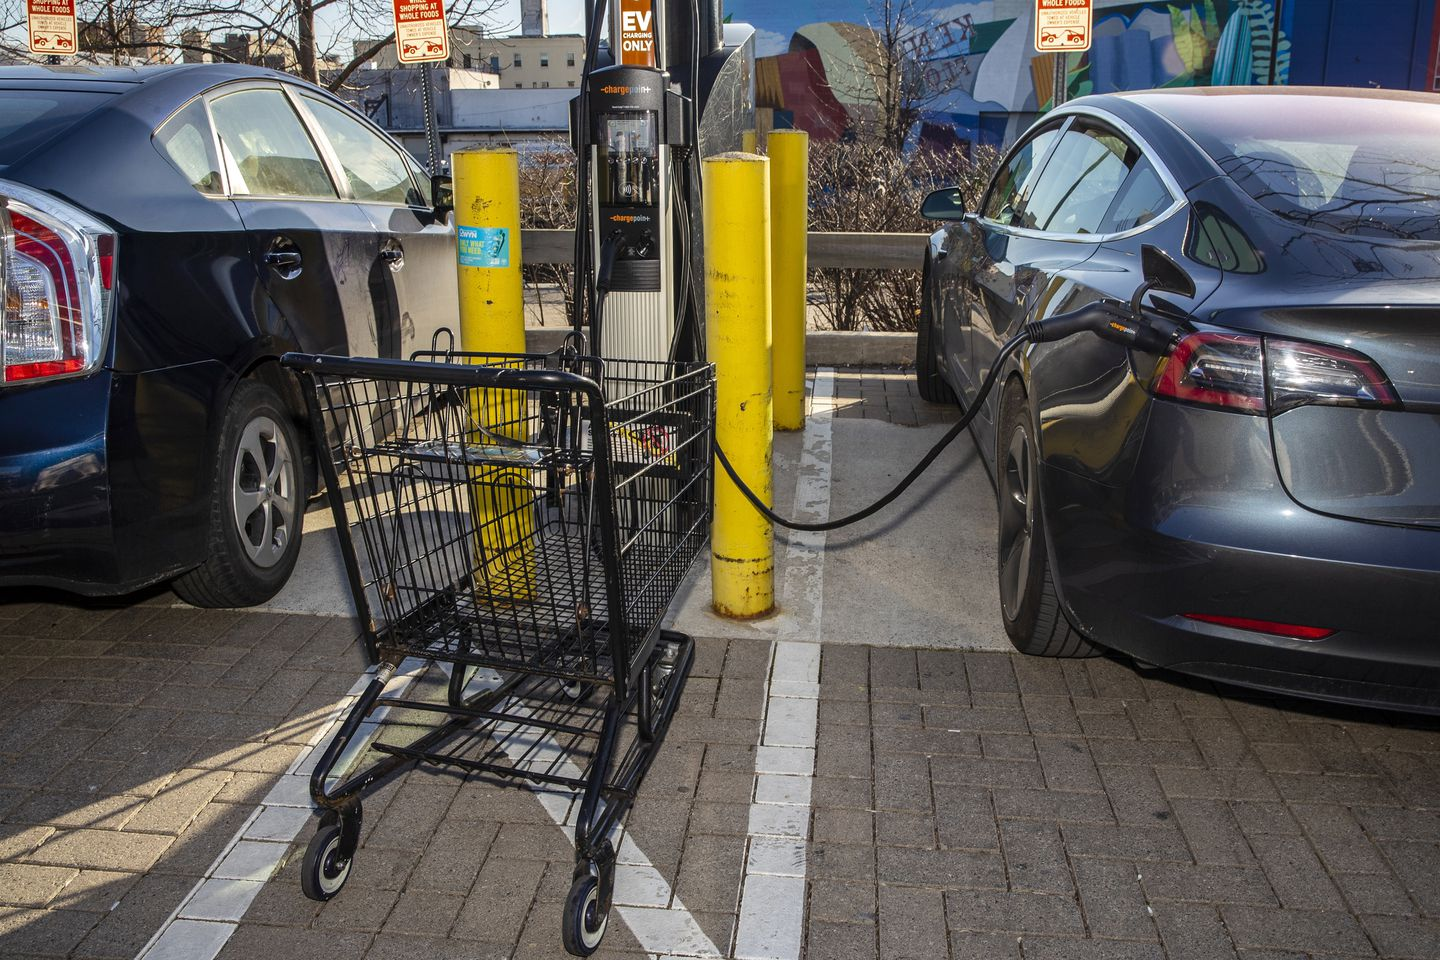 A Tesla electric vehicle (right) was charged in the parking lot of a Whole Foods in March. Governor Baker's administration announced it plans to mandate all new passenger cars sold to be electric by 2035.